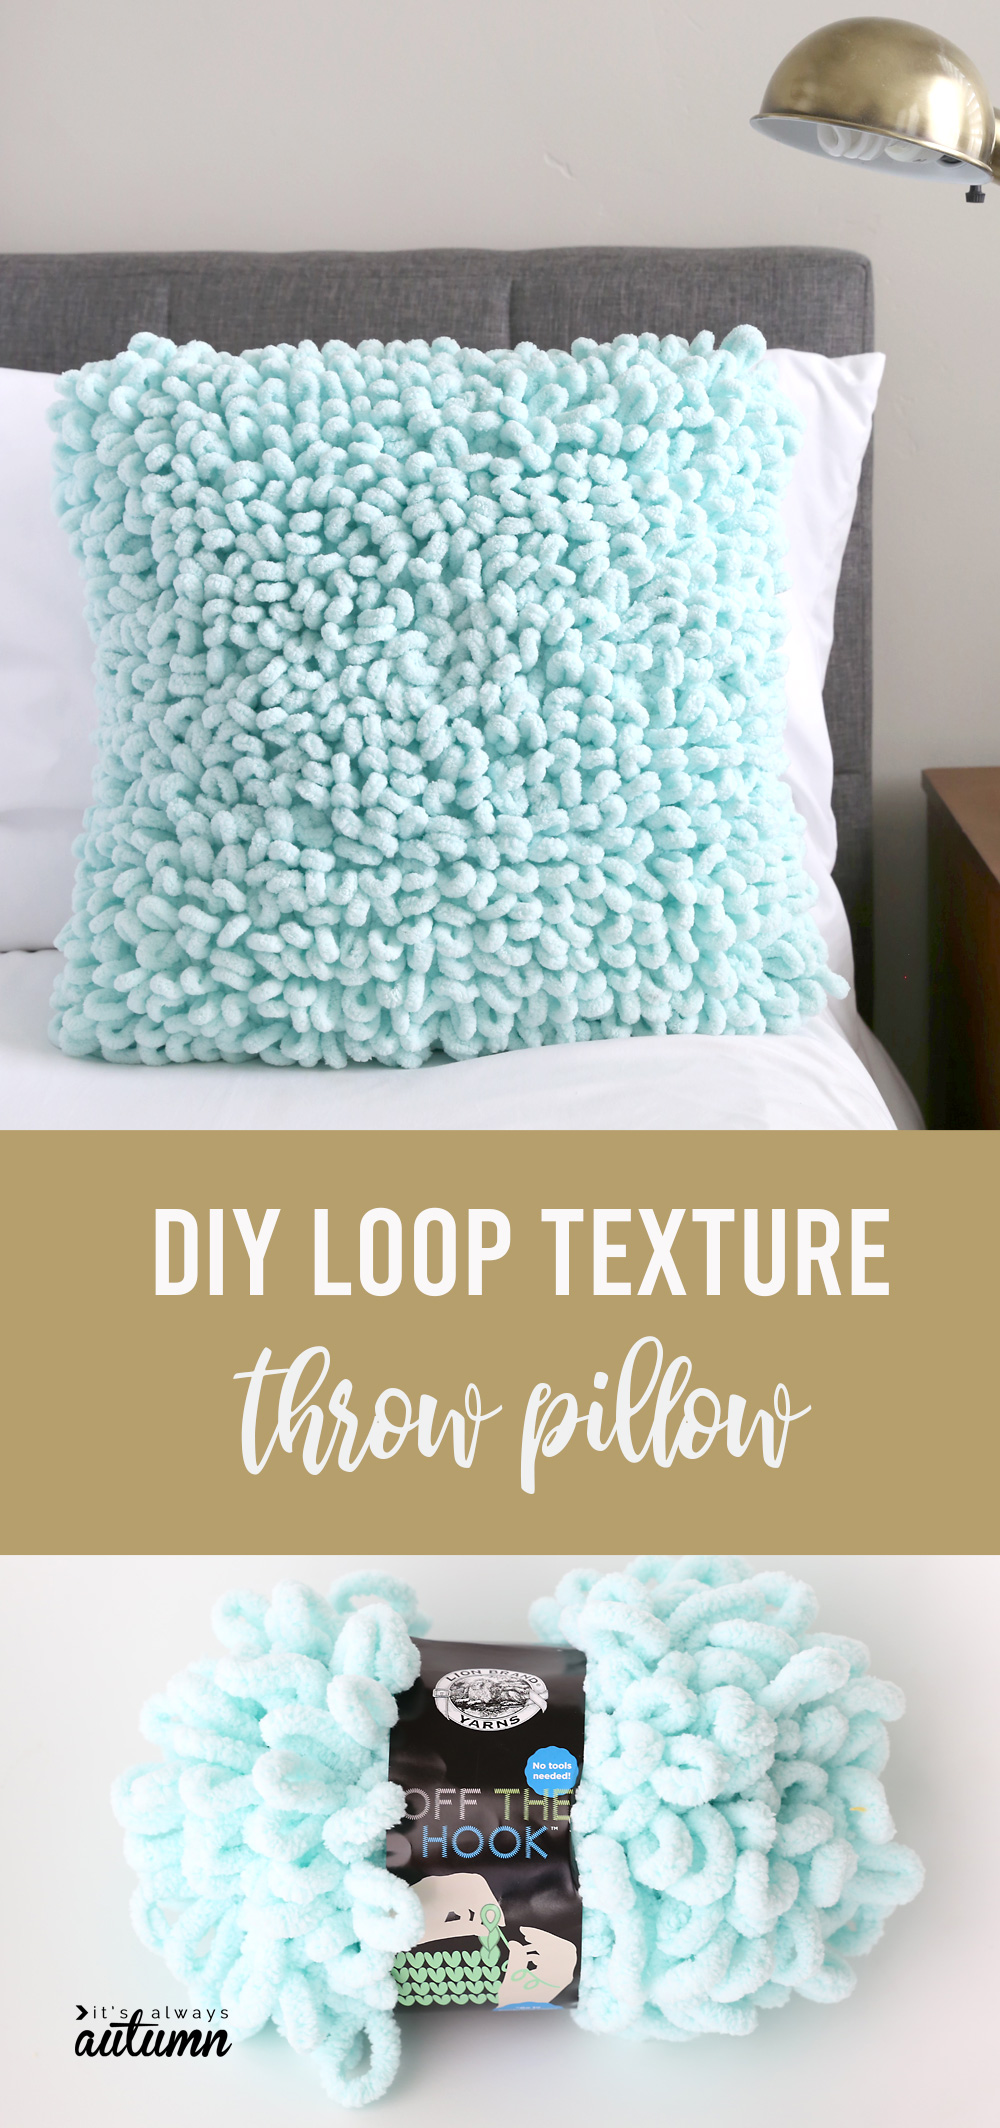 Learn how to finger knit this cool DIY throw pillow made with loop yarn